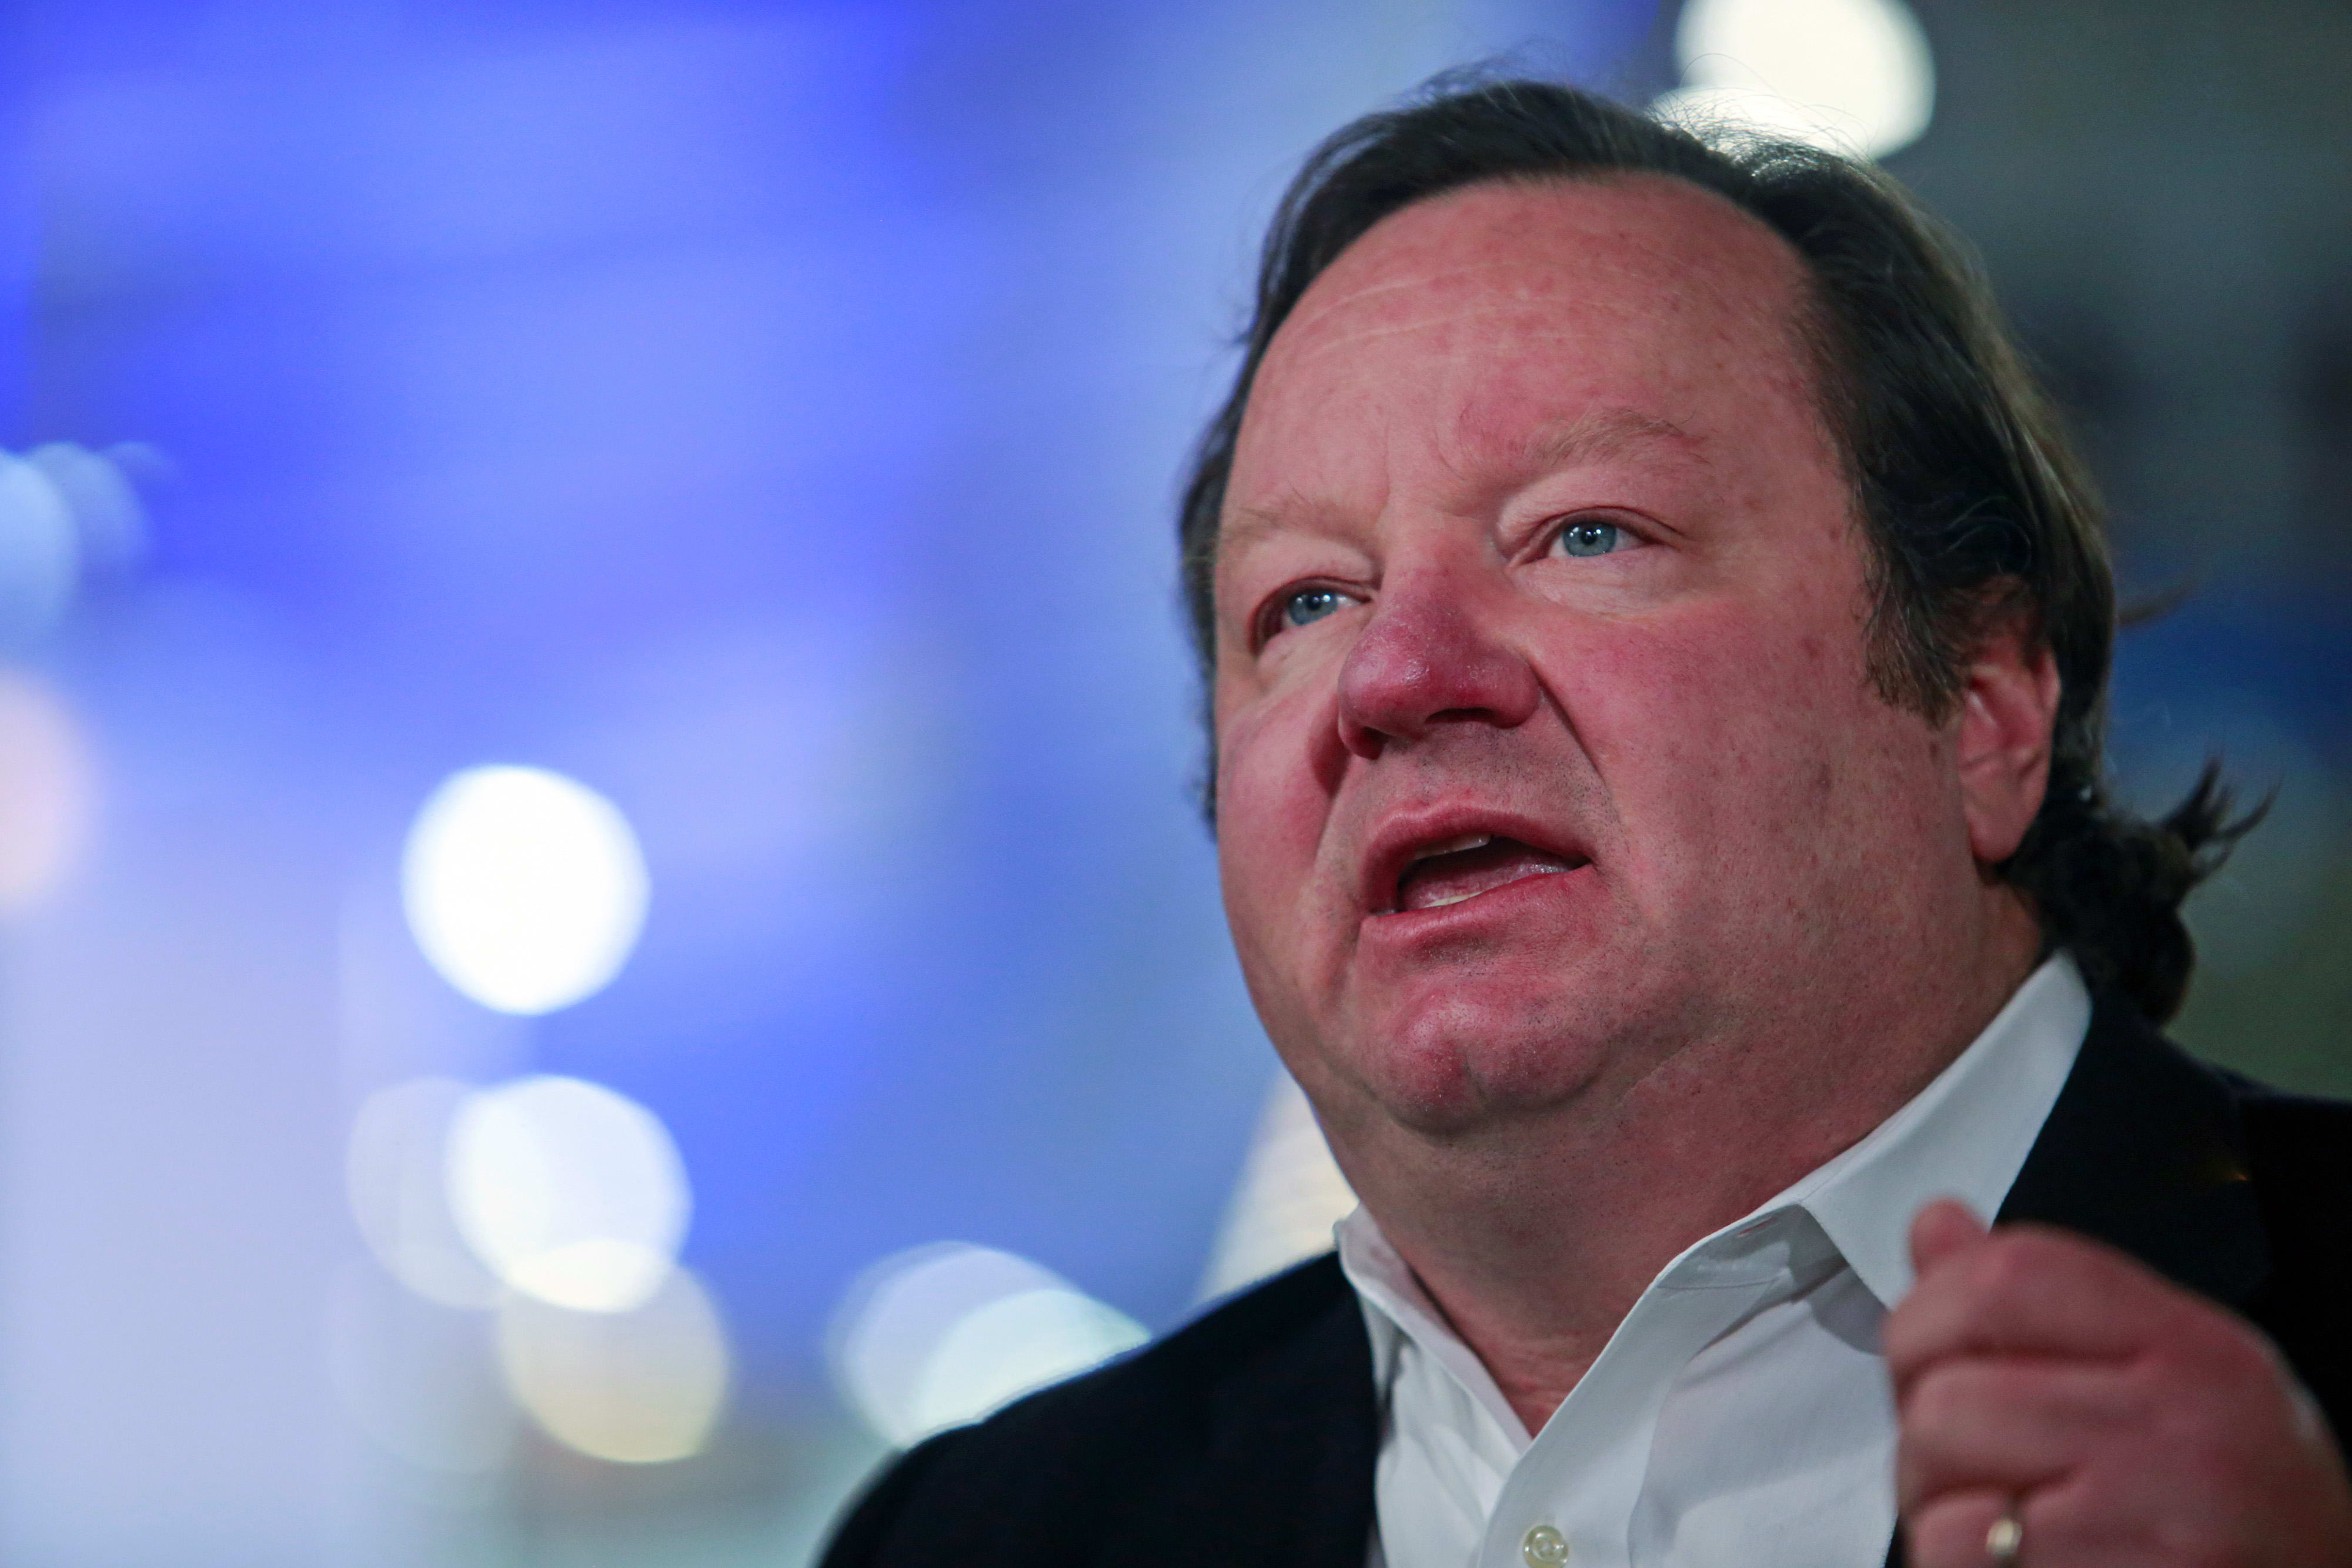 Viacom CEO says new streaming services boosting demand